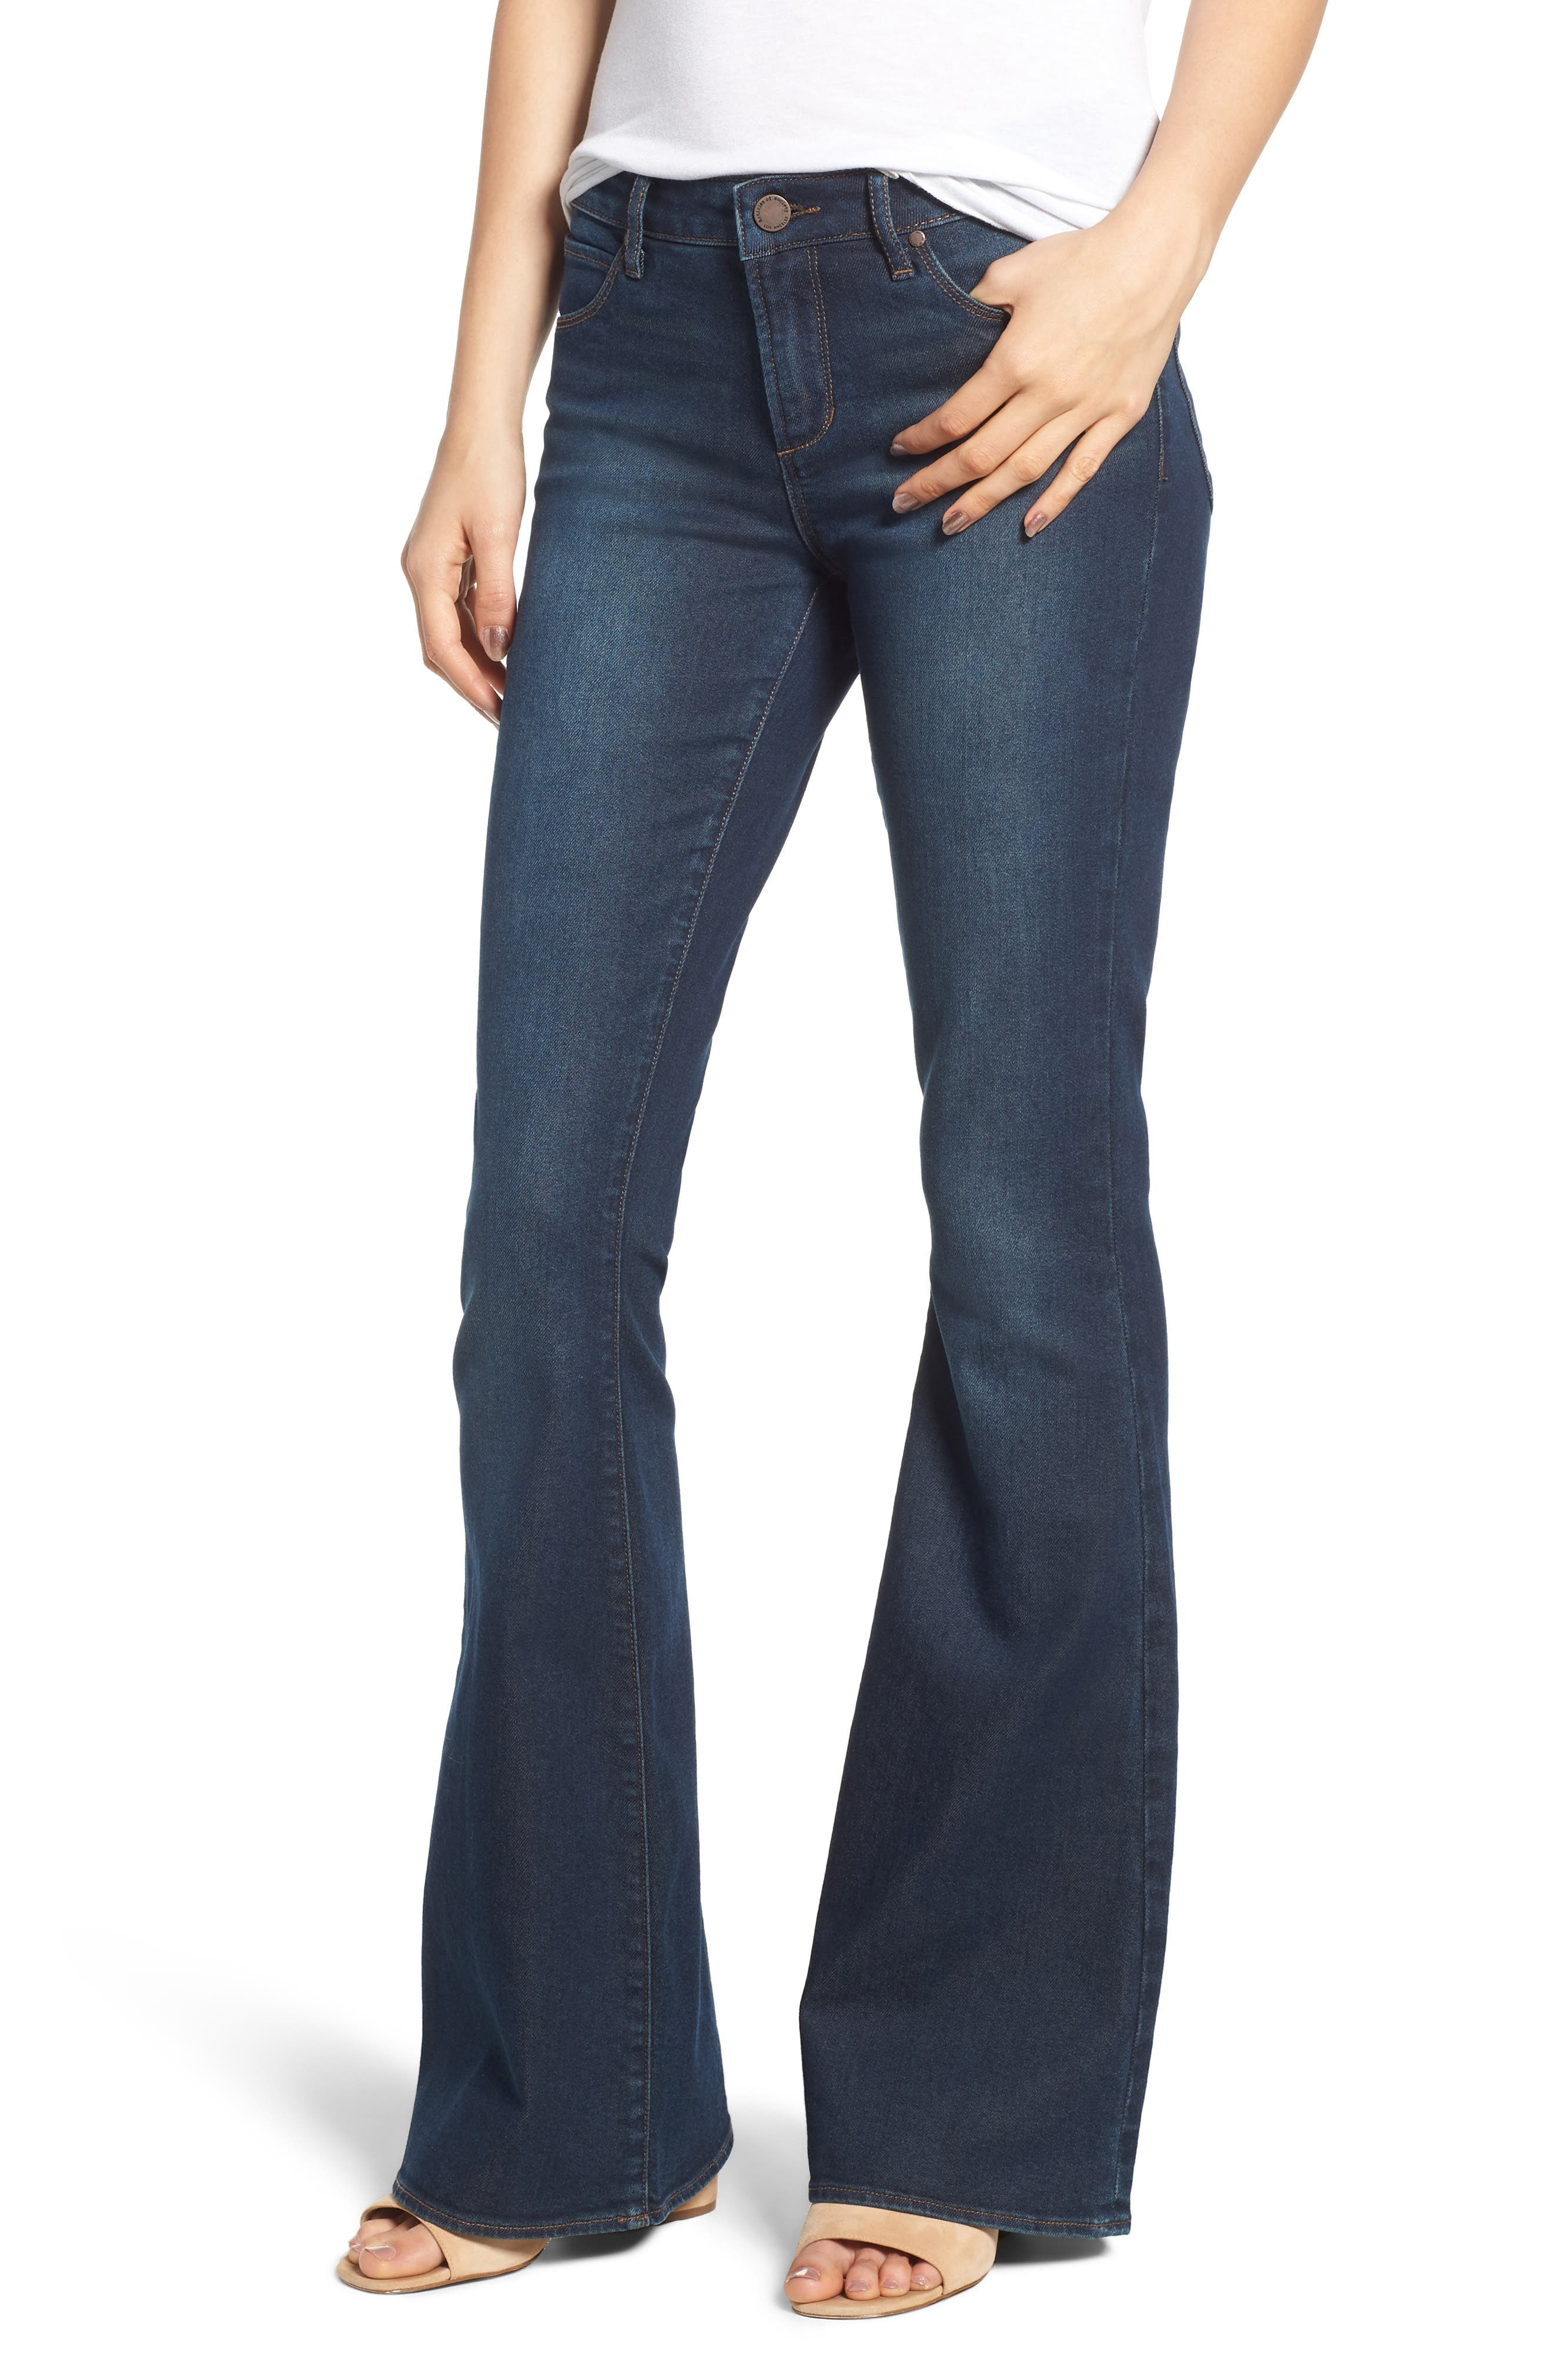 ARTICLES OF SOCIETY Faith Flare Jeans, Main, color, 467